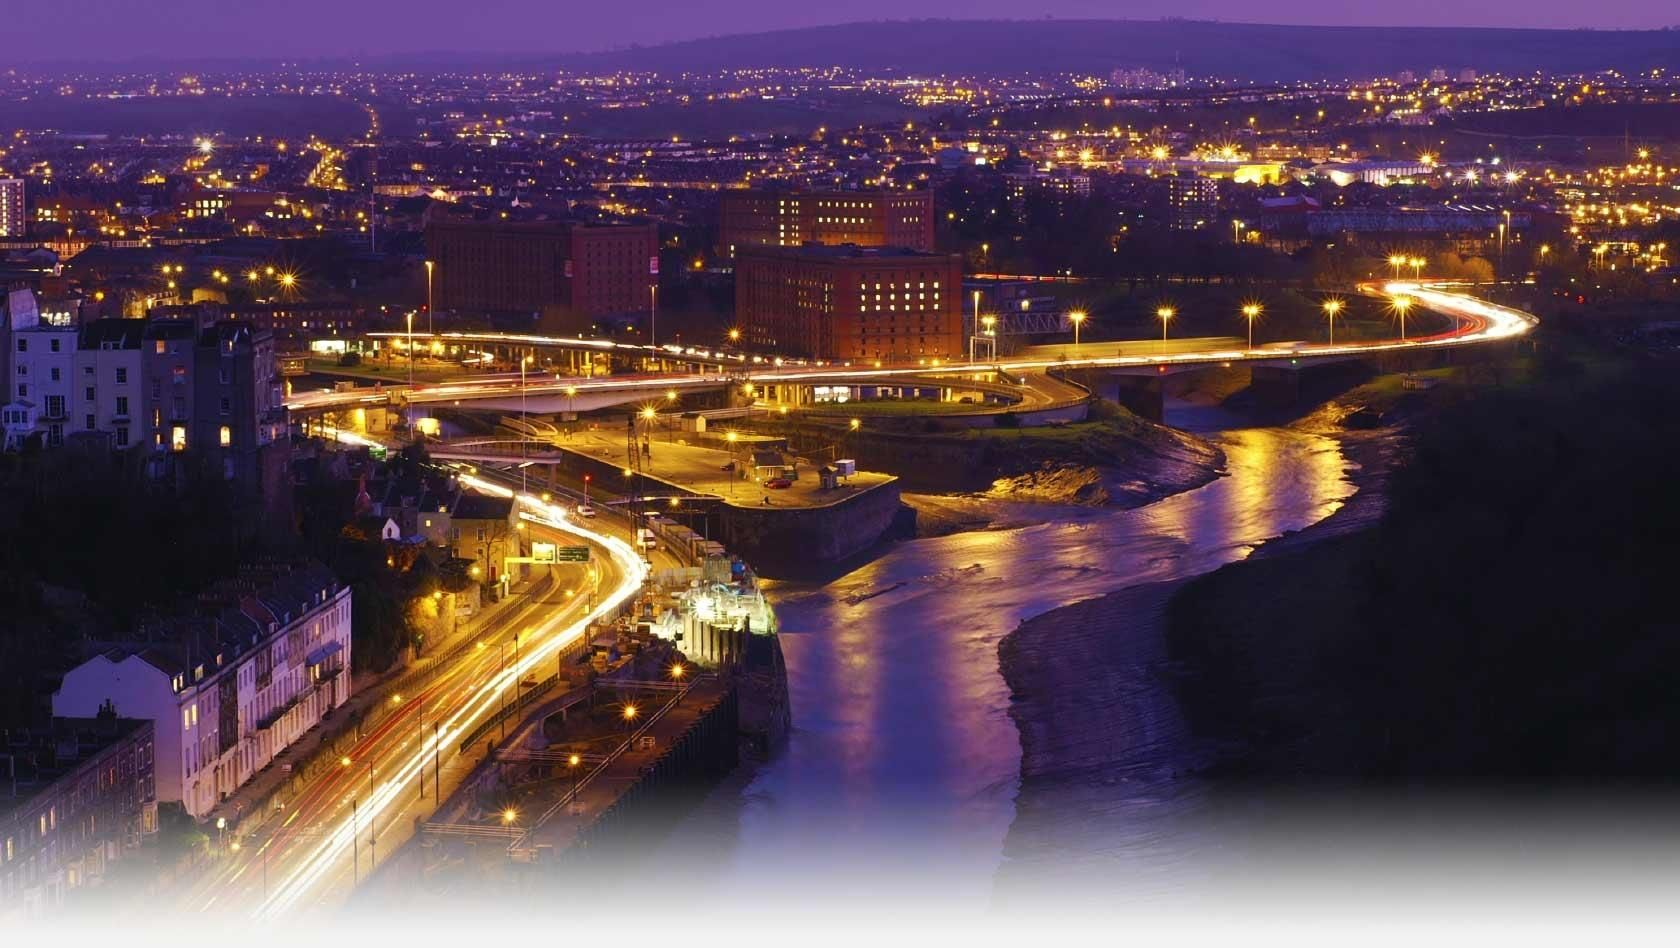 Places to go in bristol at night